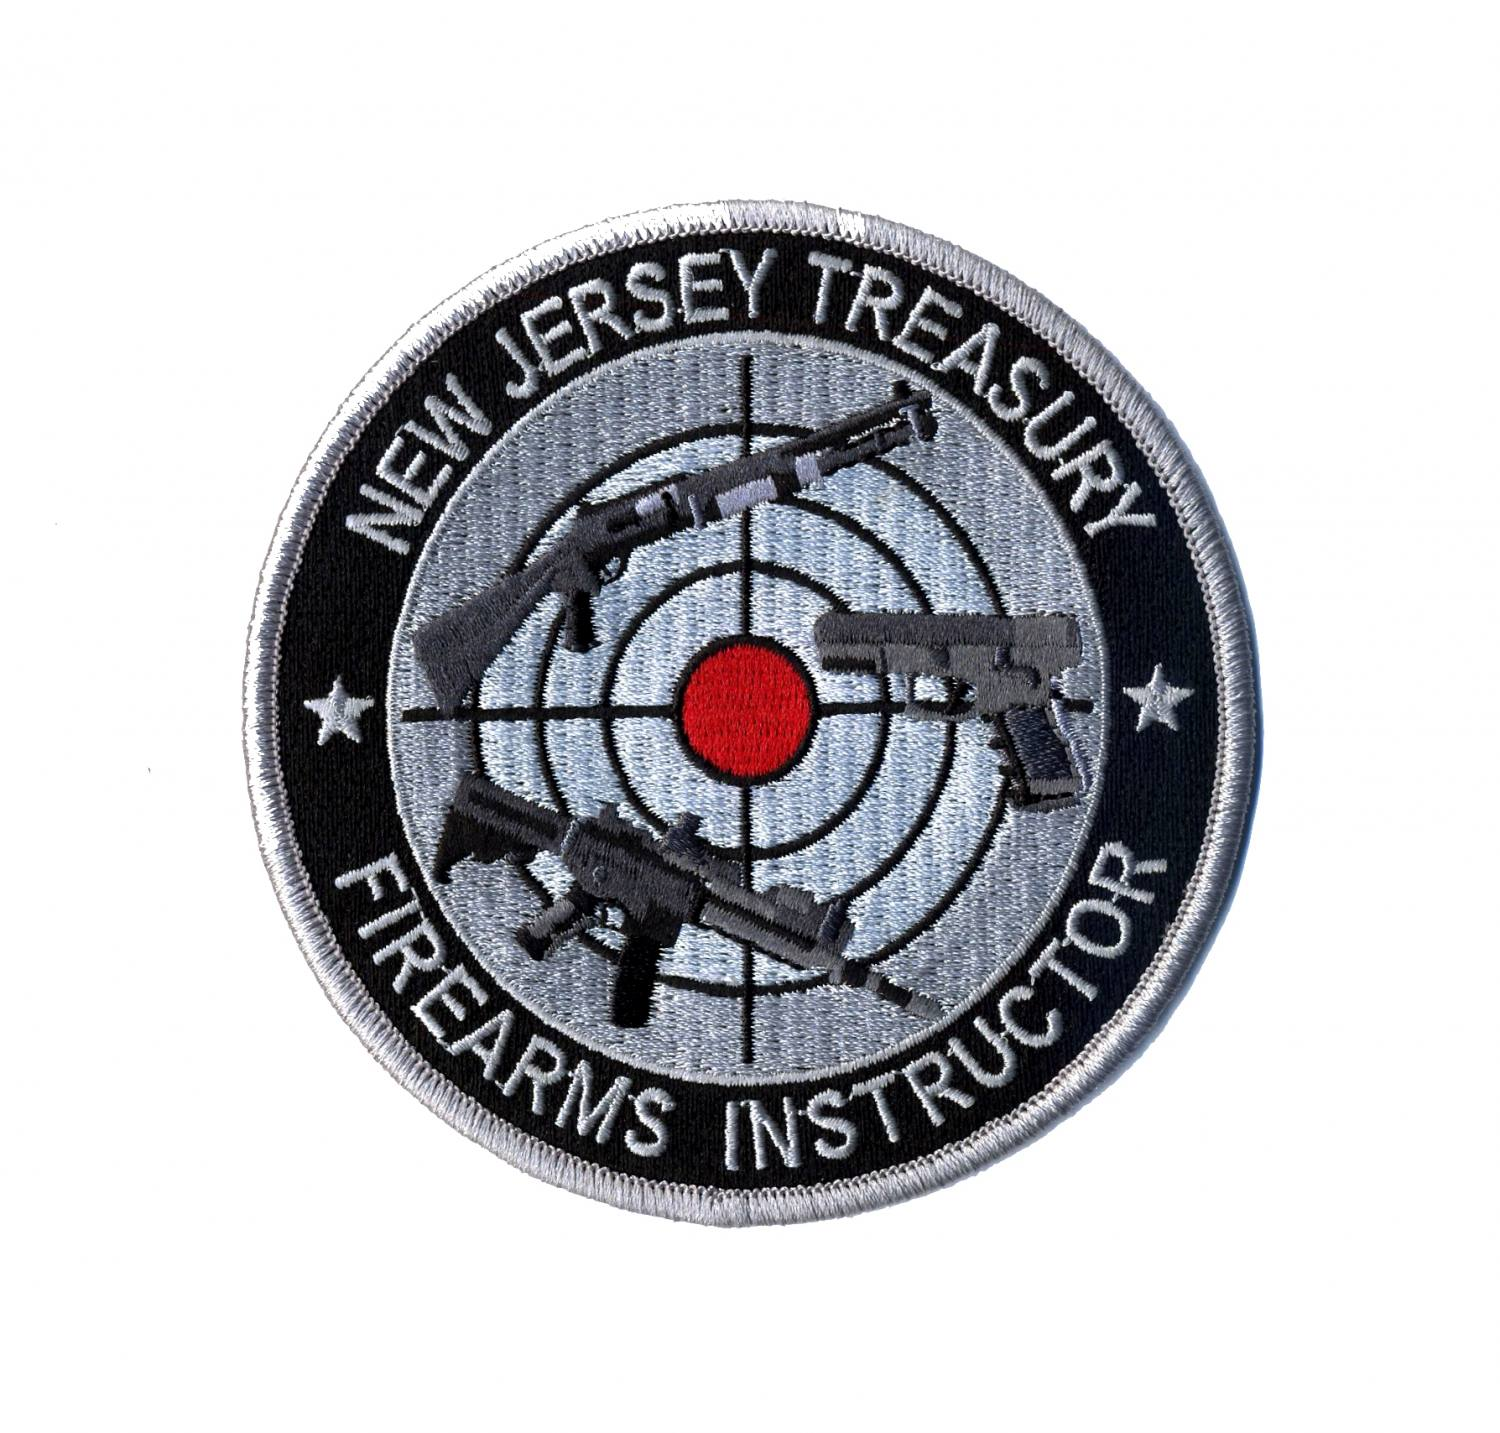 Firearms Instructor Circle Patch